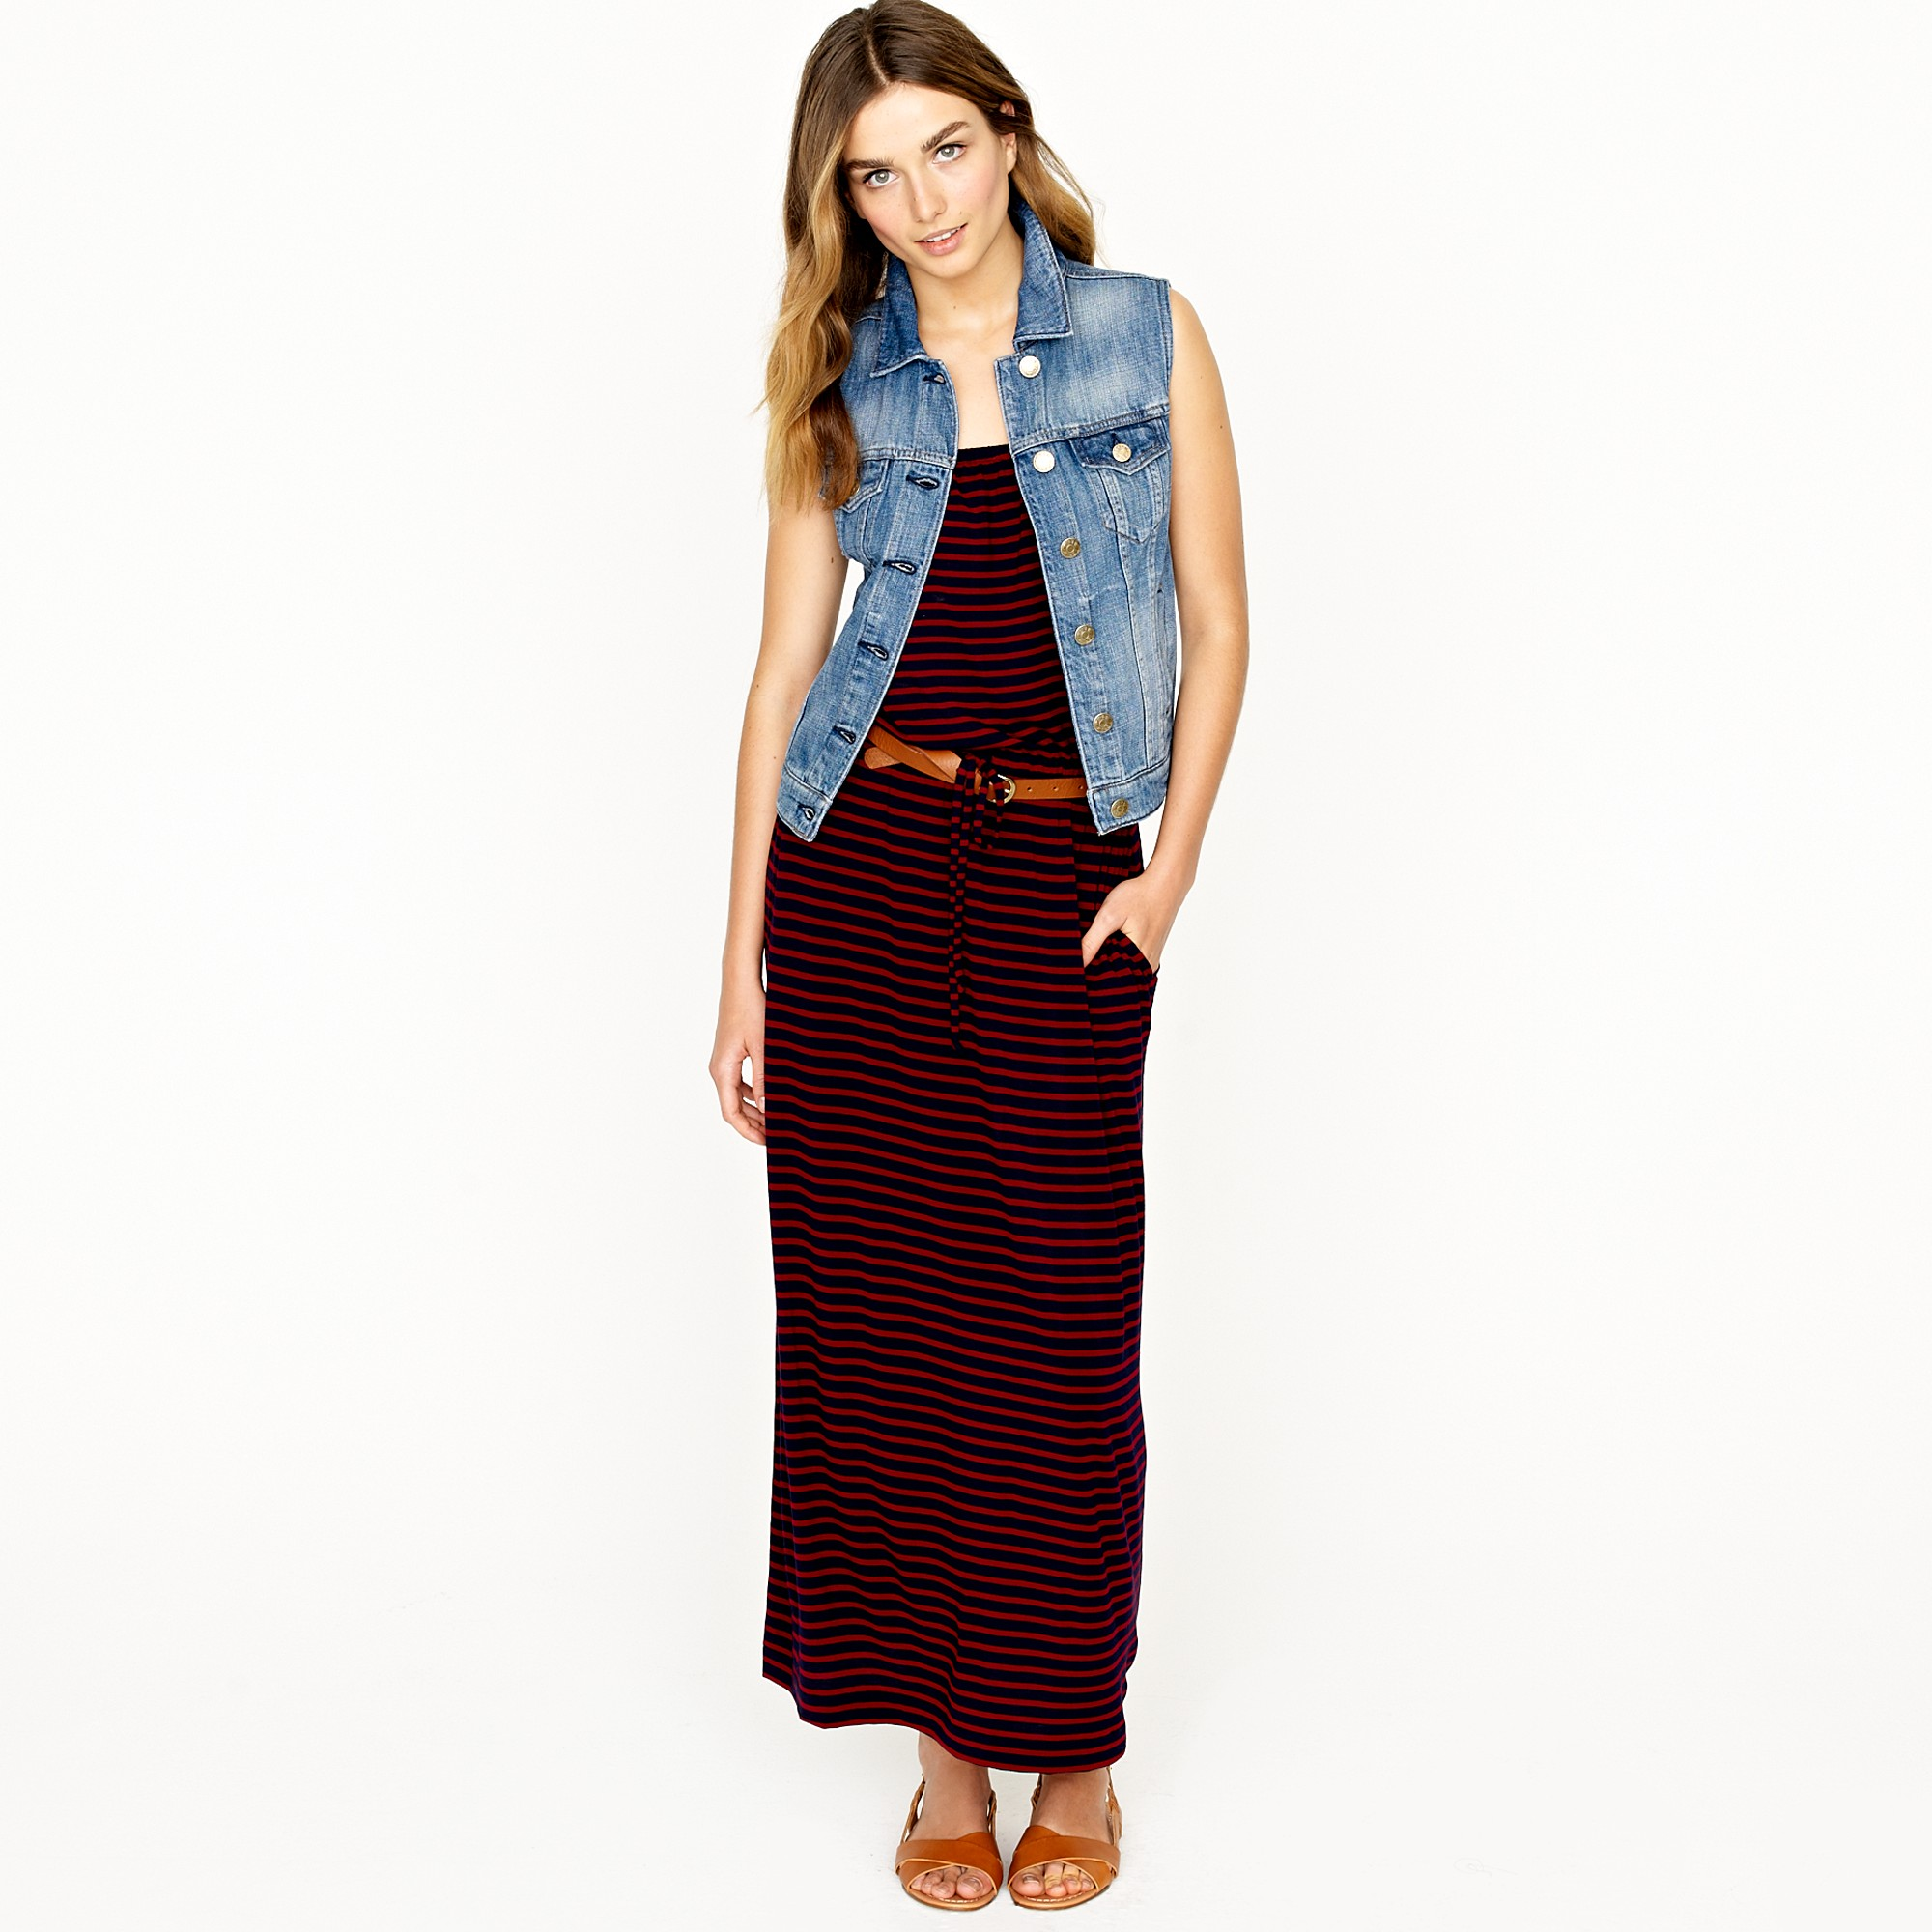 473eb1018b8 J.Crew Amie Knit Maxidress in Skinny Stripe in Purple - Lyst